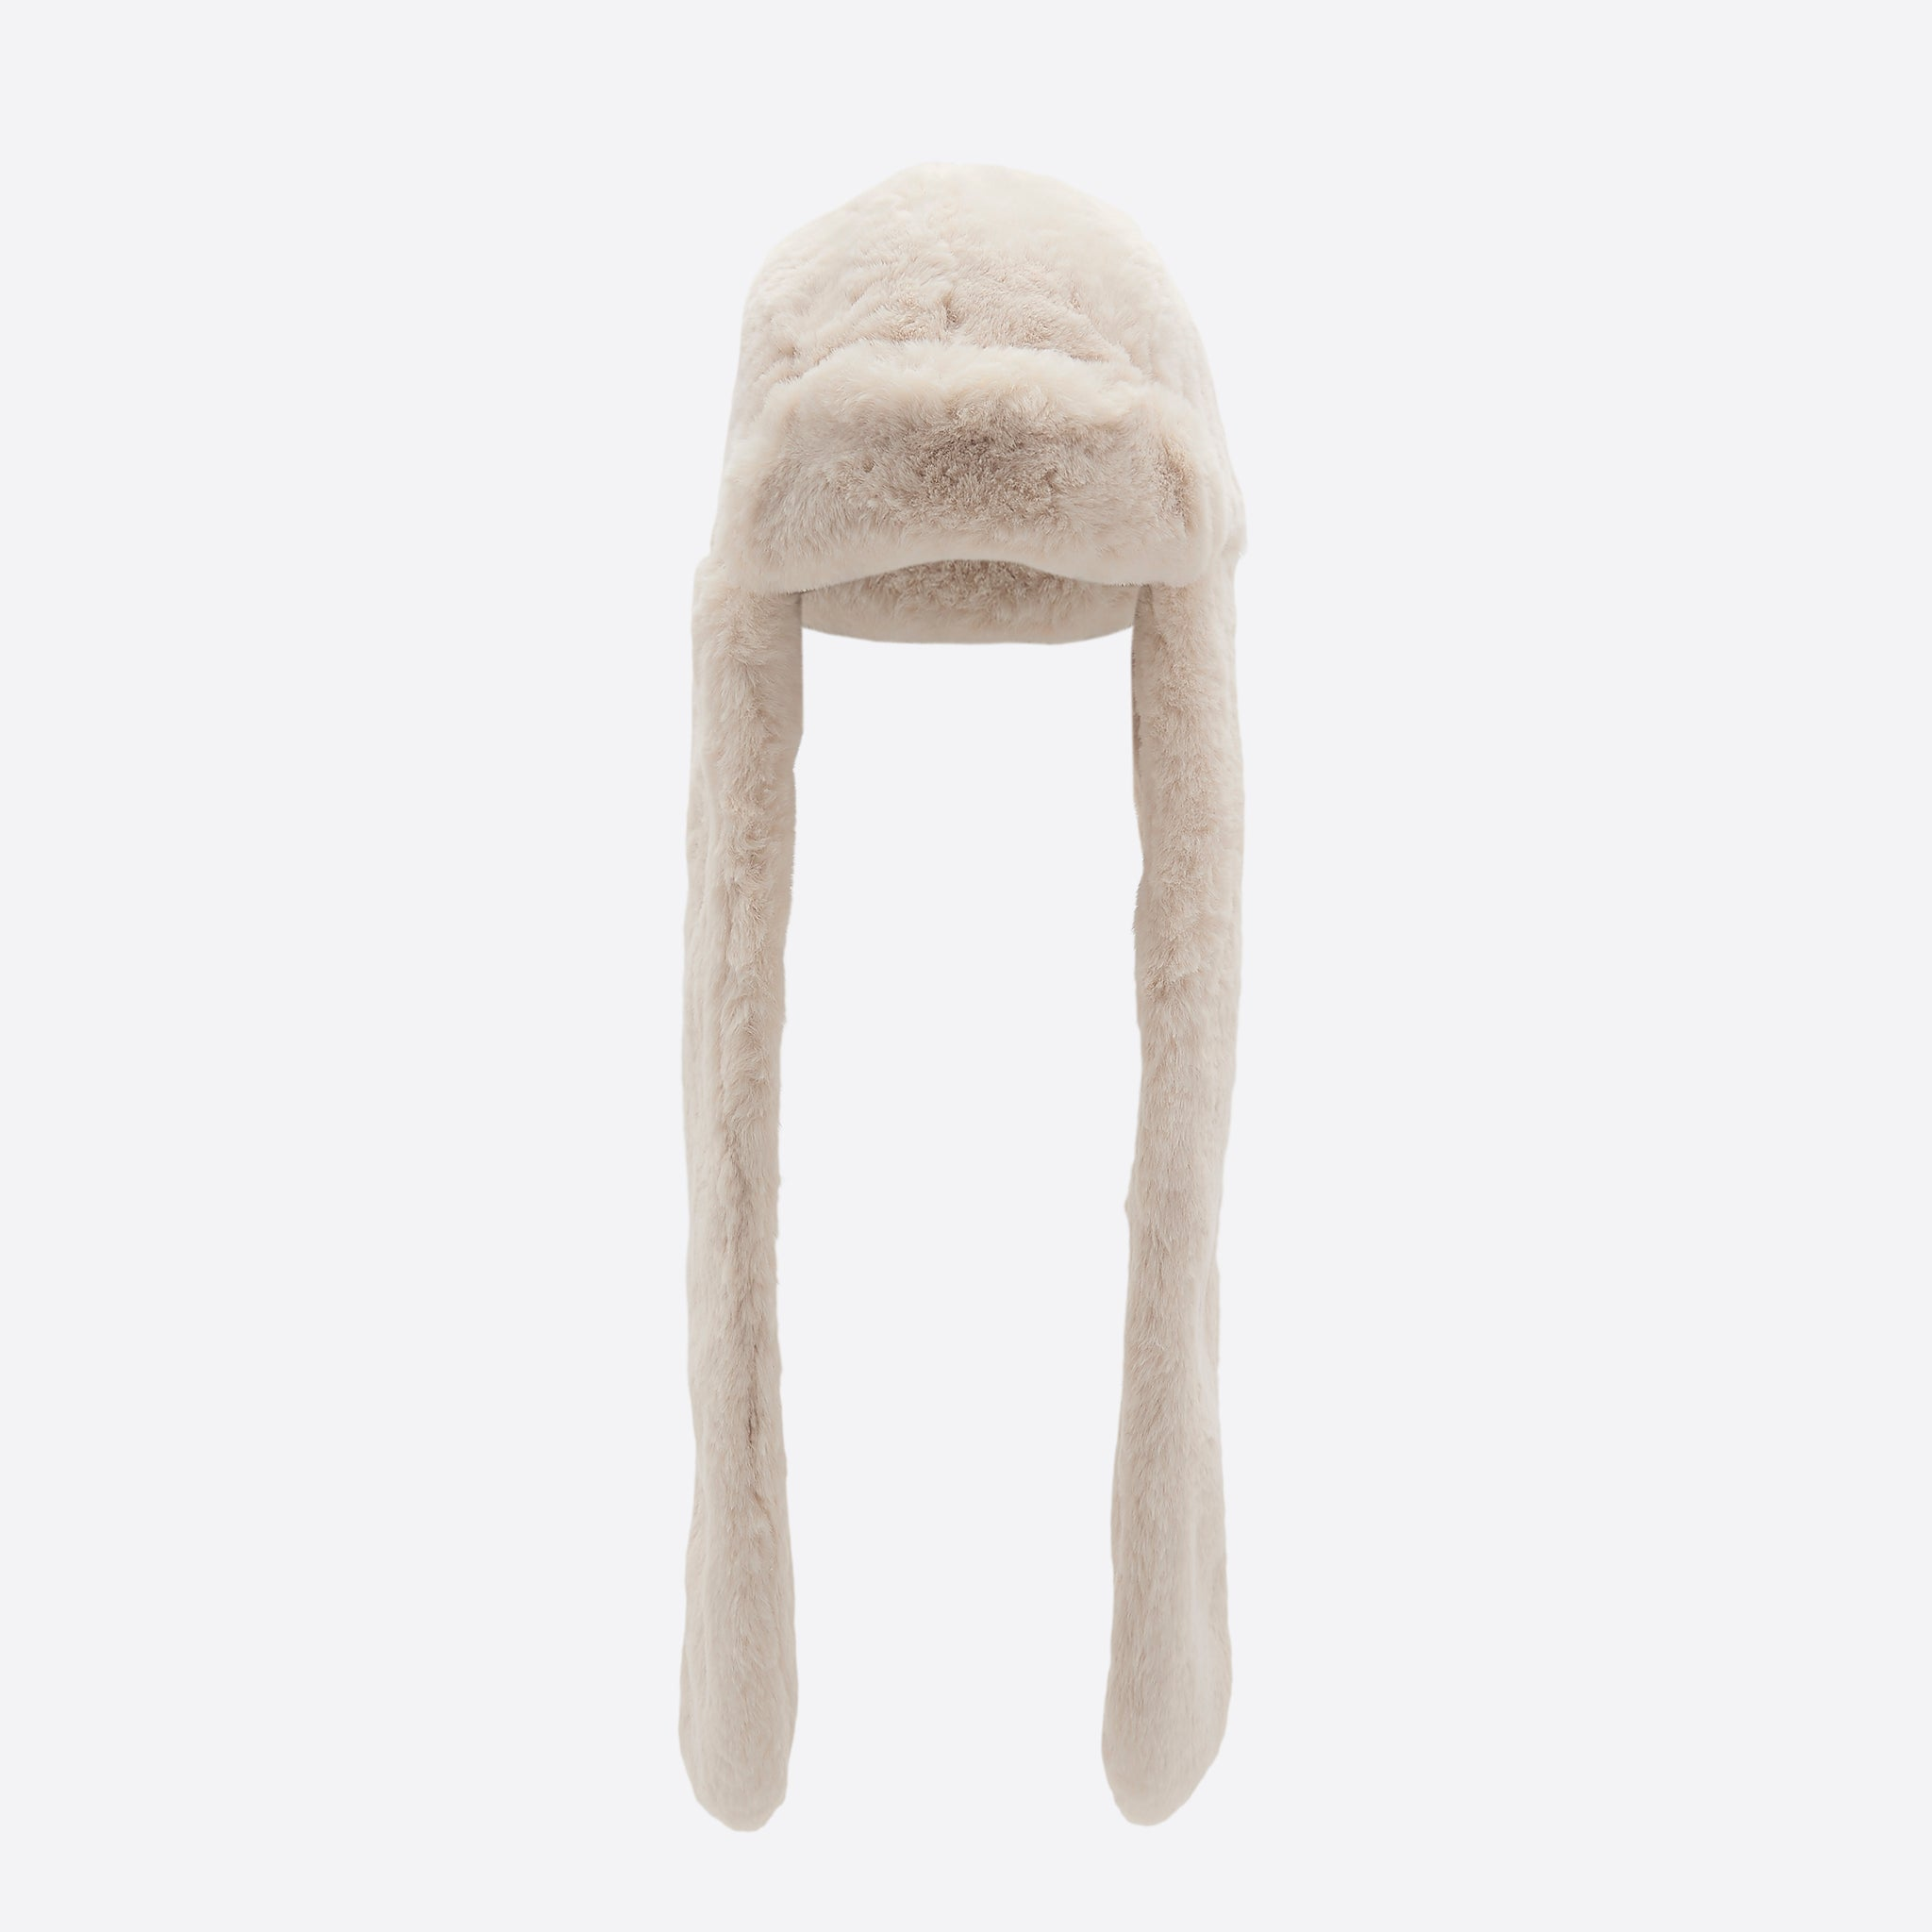 Neul Shapka Faux Fur Hat in Ivory